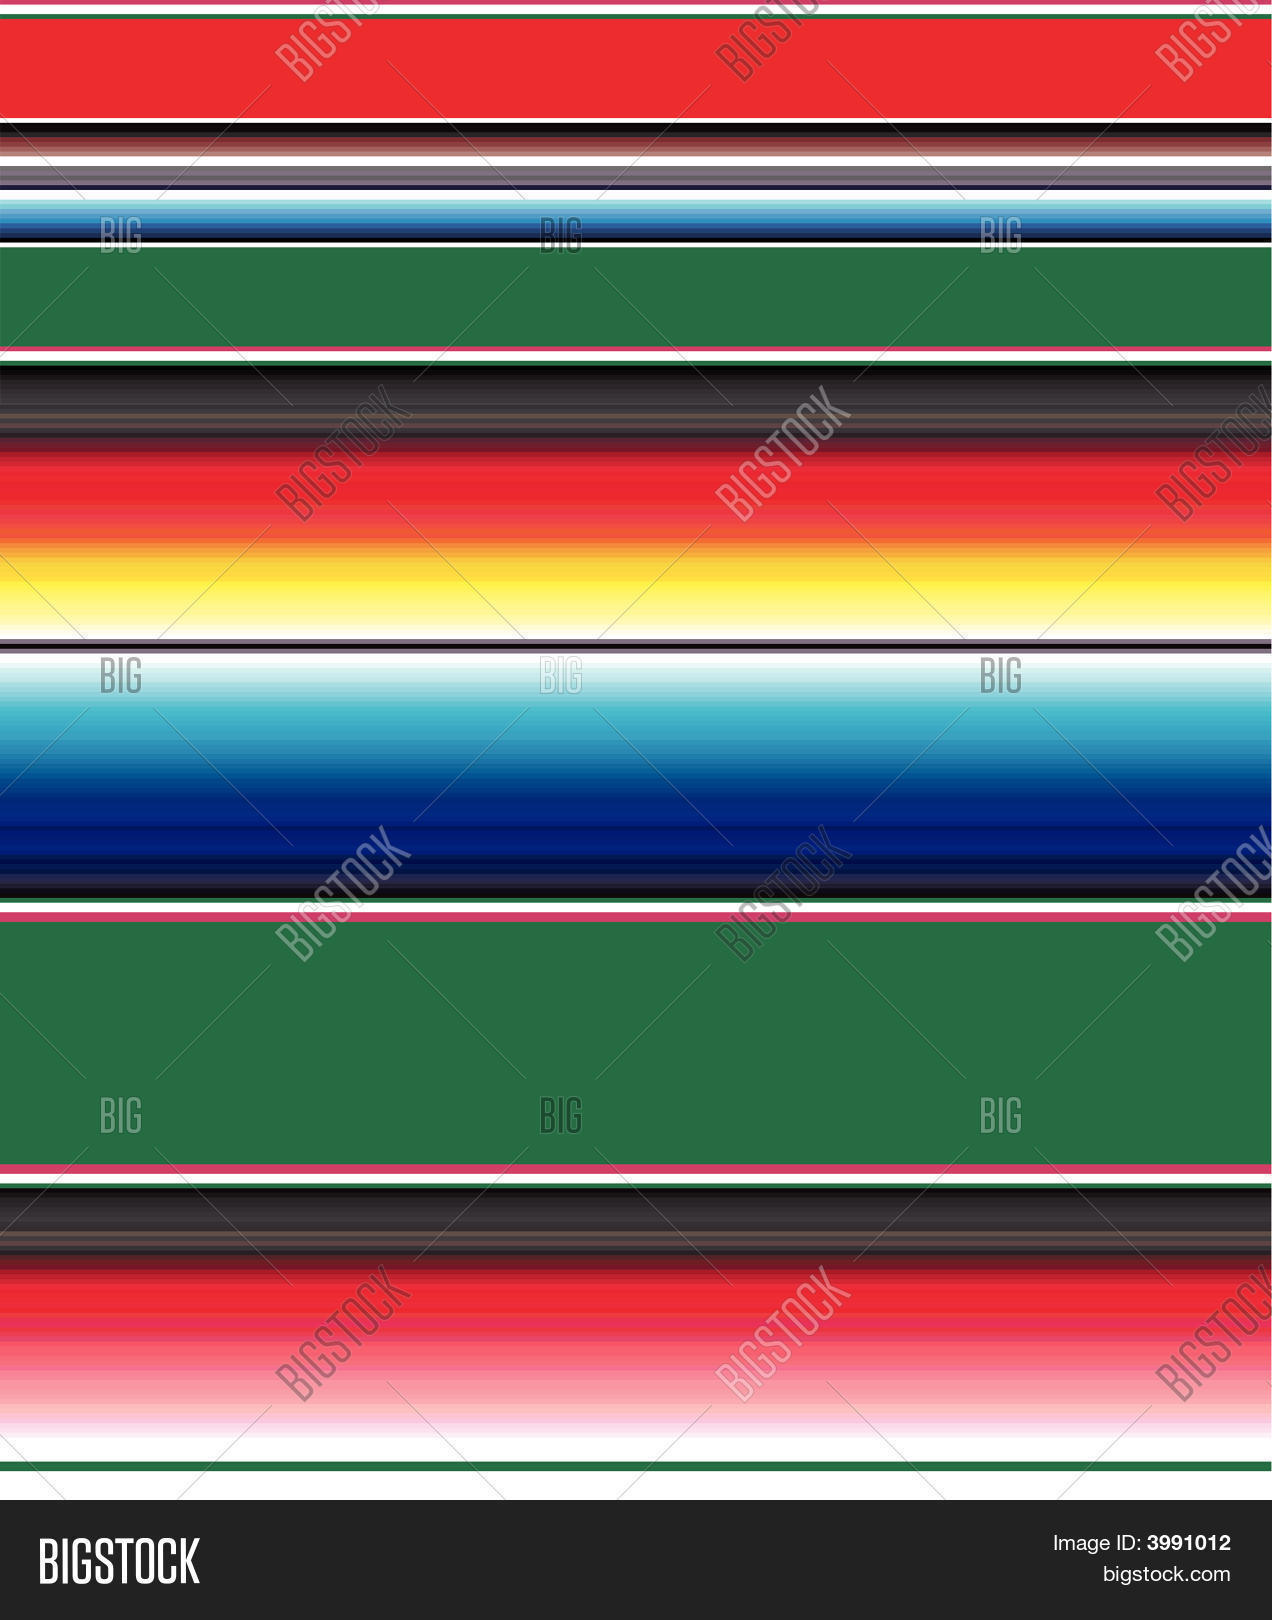 Mexican-Blanket-Pattern Vector & Photo | Bigstock